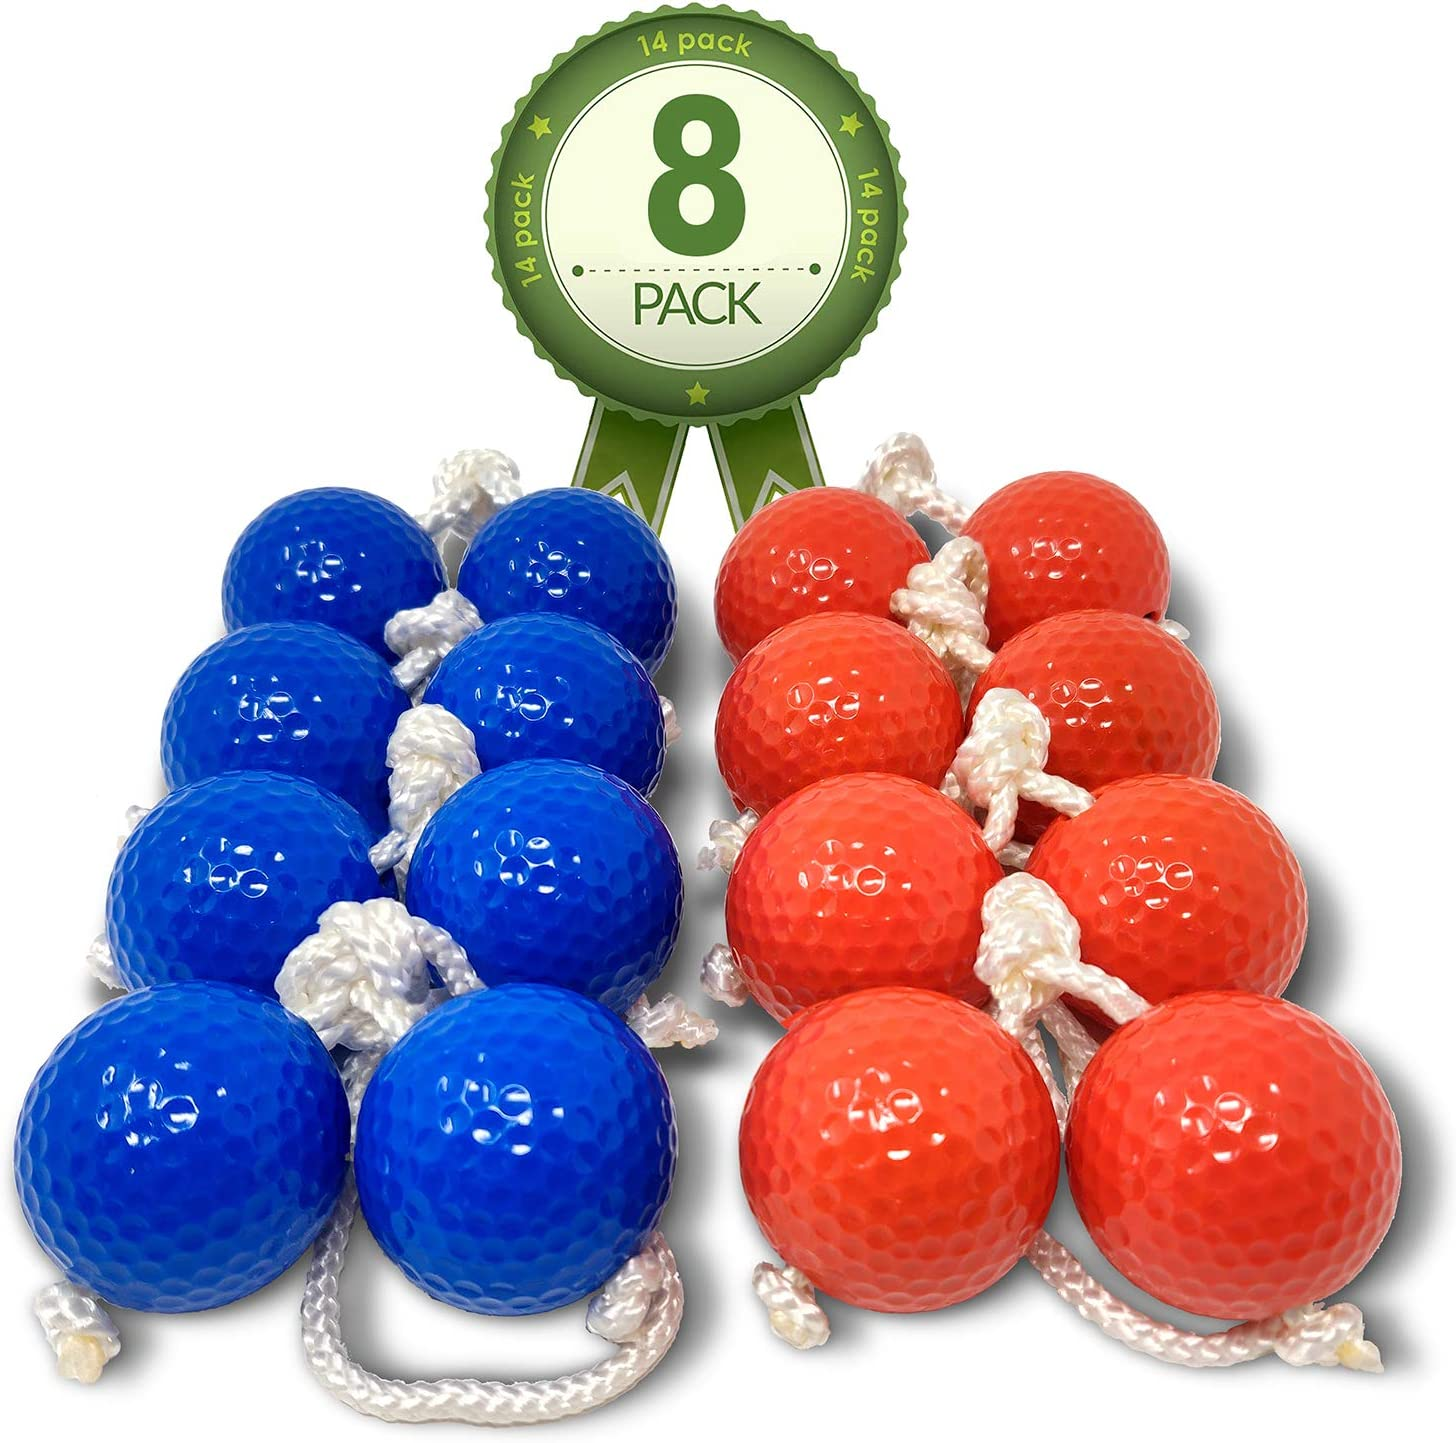 """Kayco Outlet - Tournament Quality Ladder Balls Replacement – 8 Pack - for Outdoor Ladderball Toss and Golf Game Set 14.75"""" Size"""